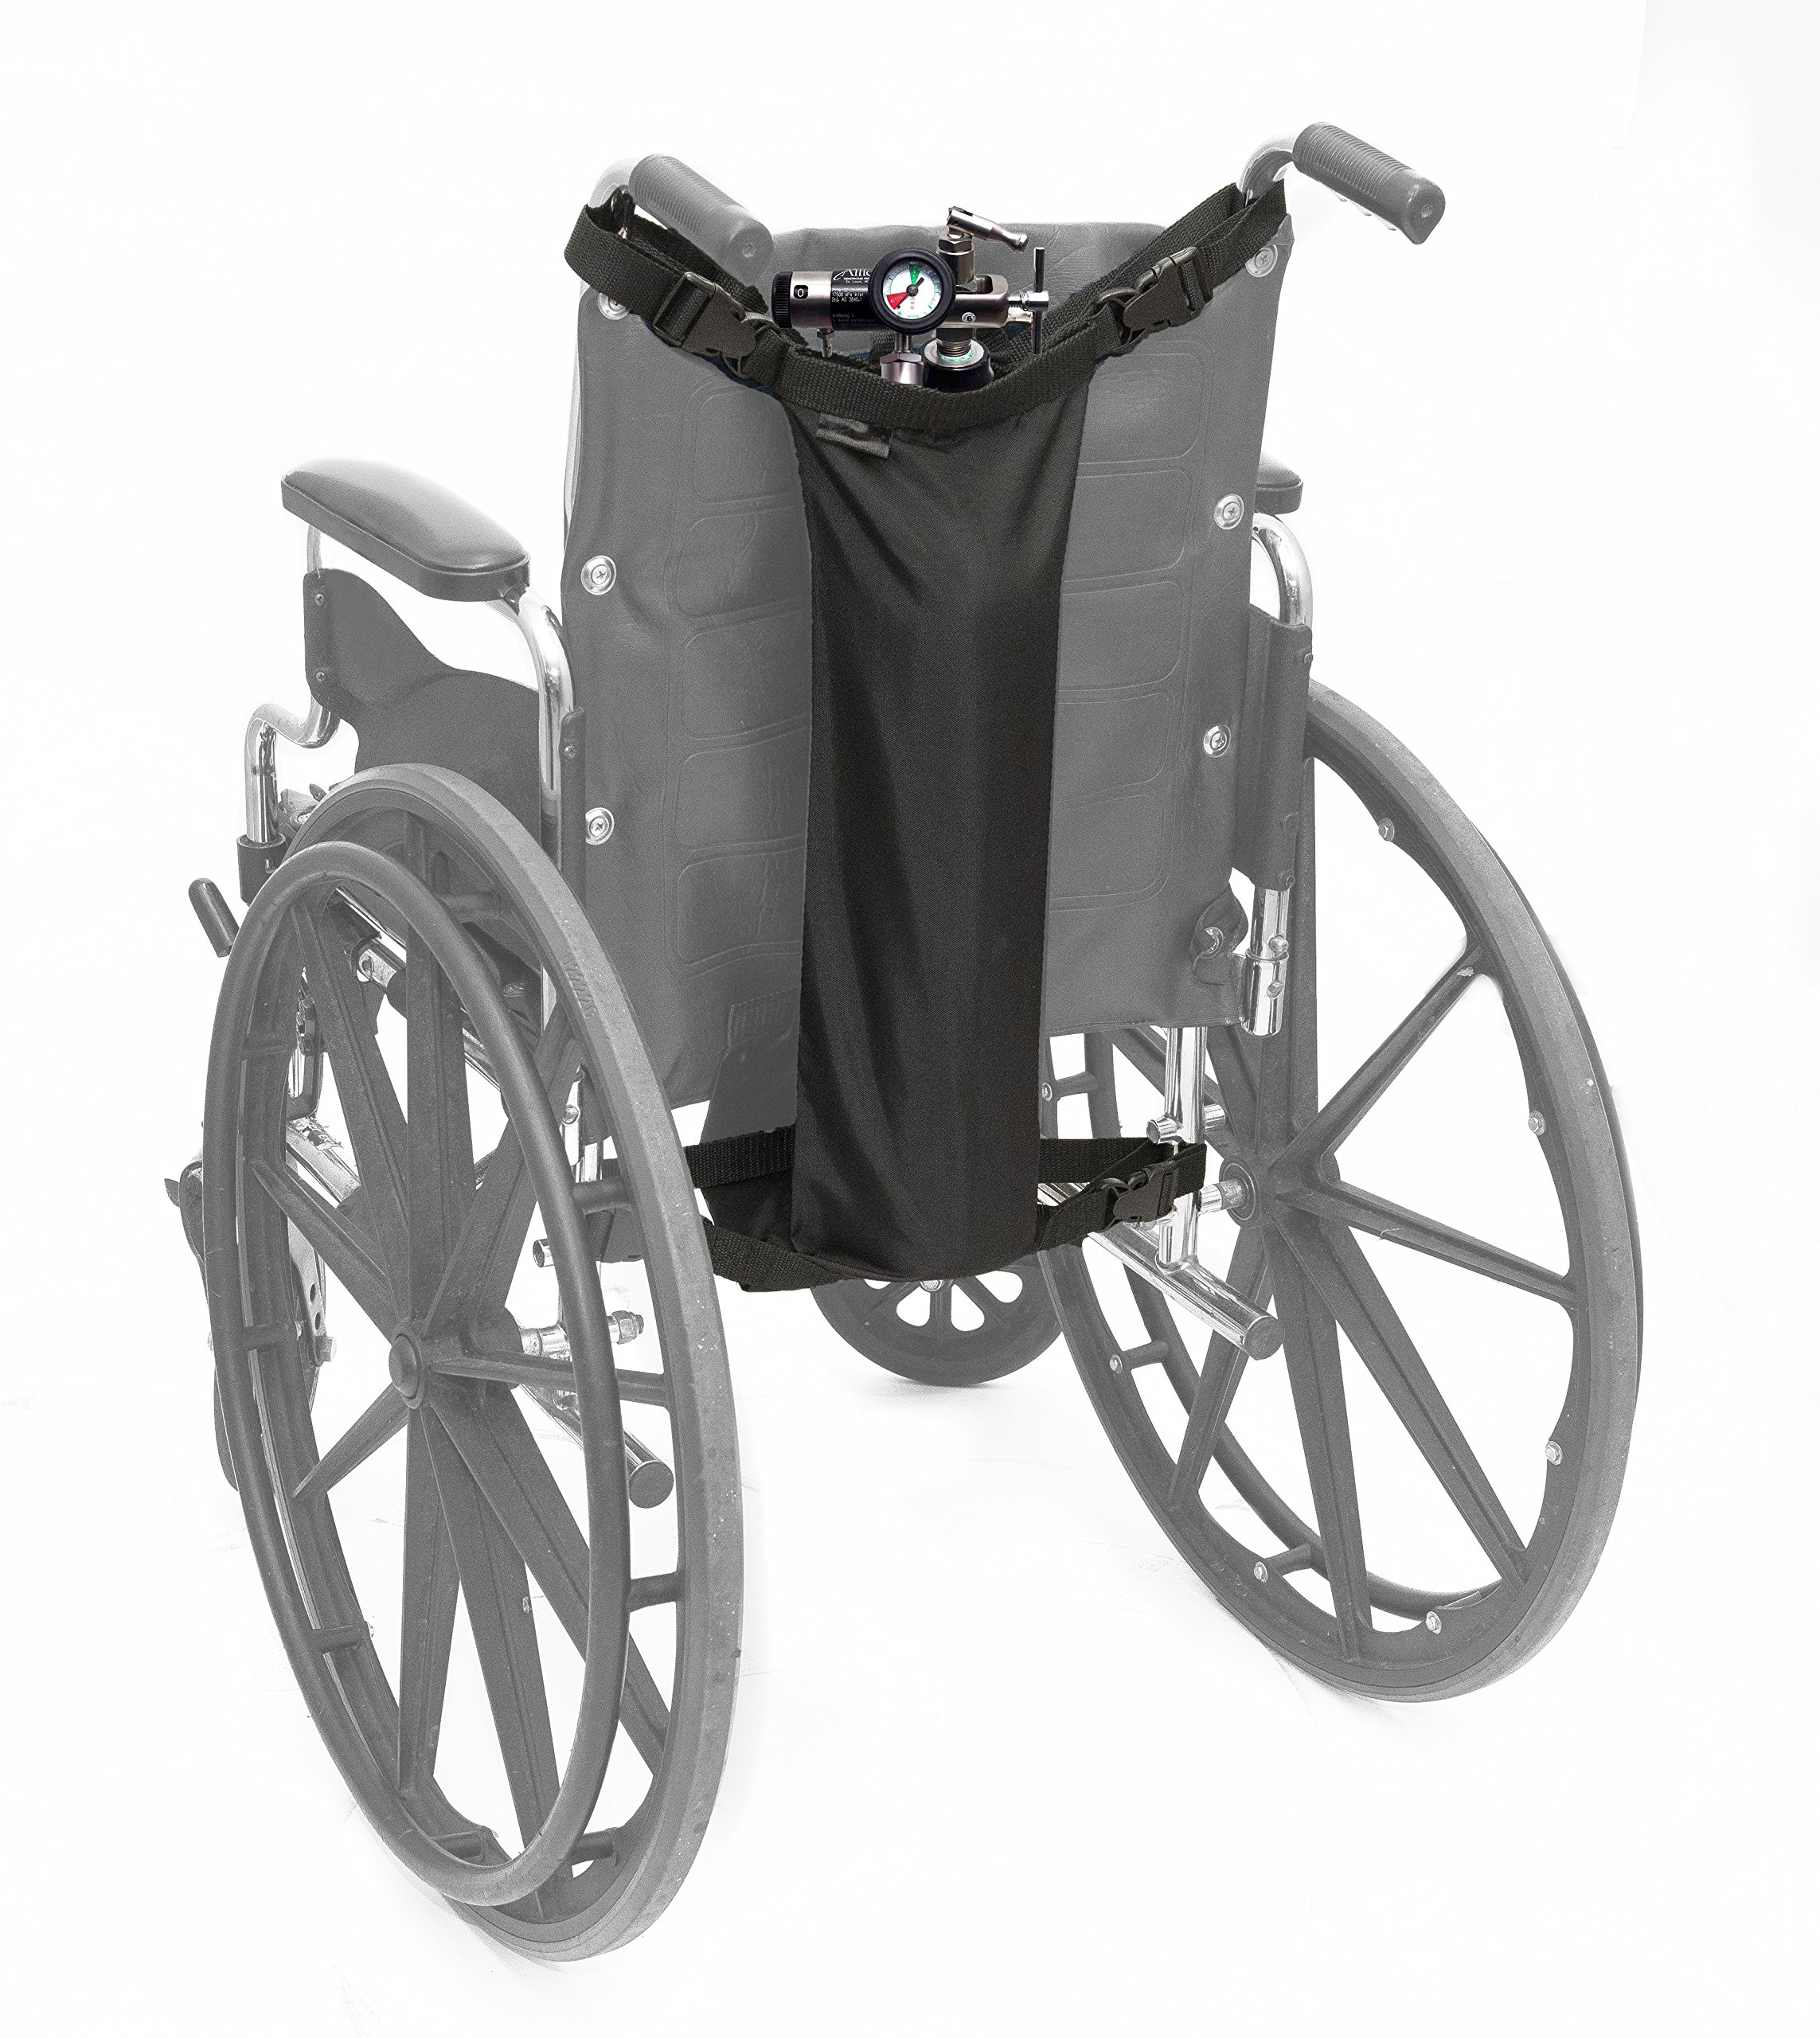 AdirMed Oxygen Cylinder Bag for Wheelchairs (D & E Cylinders) by AdirMed